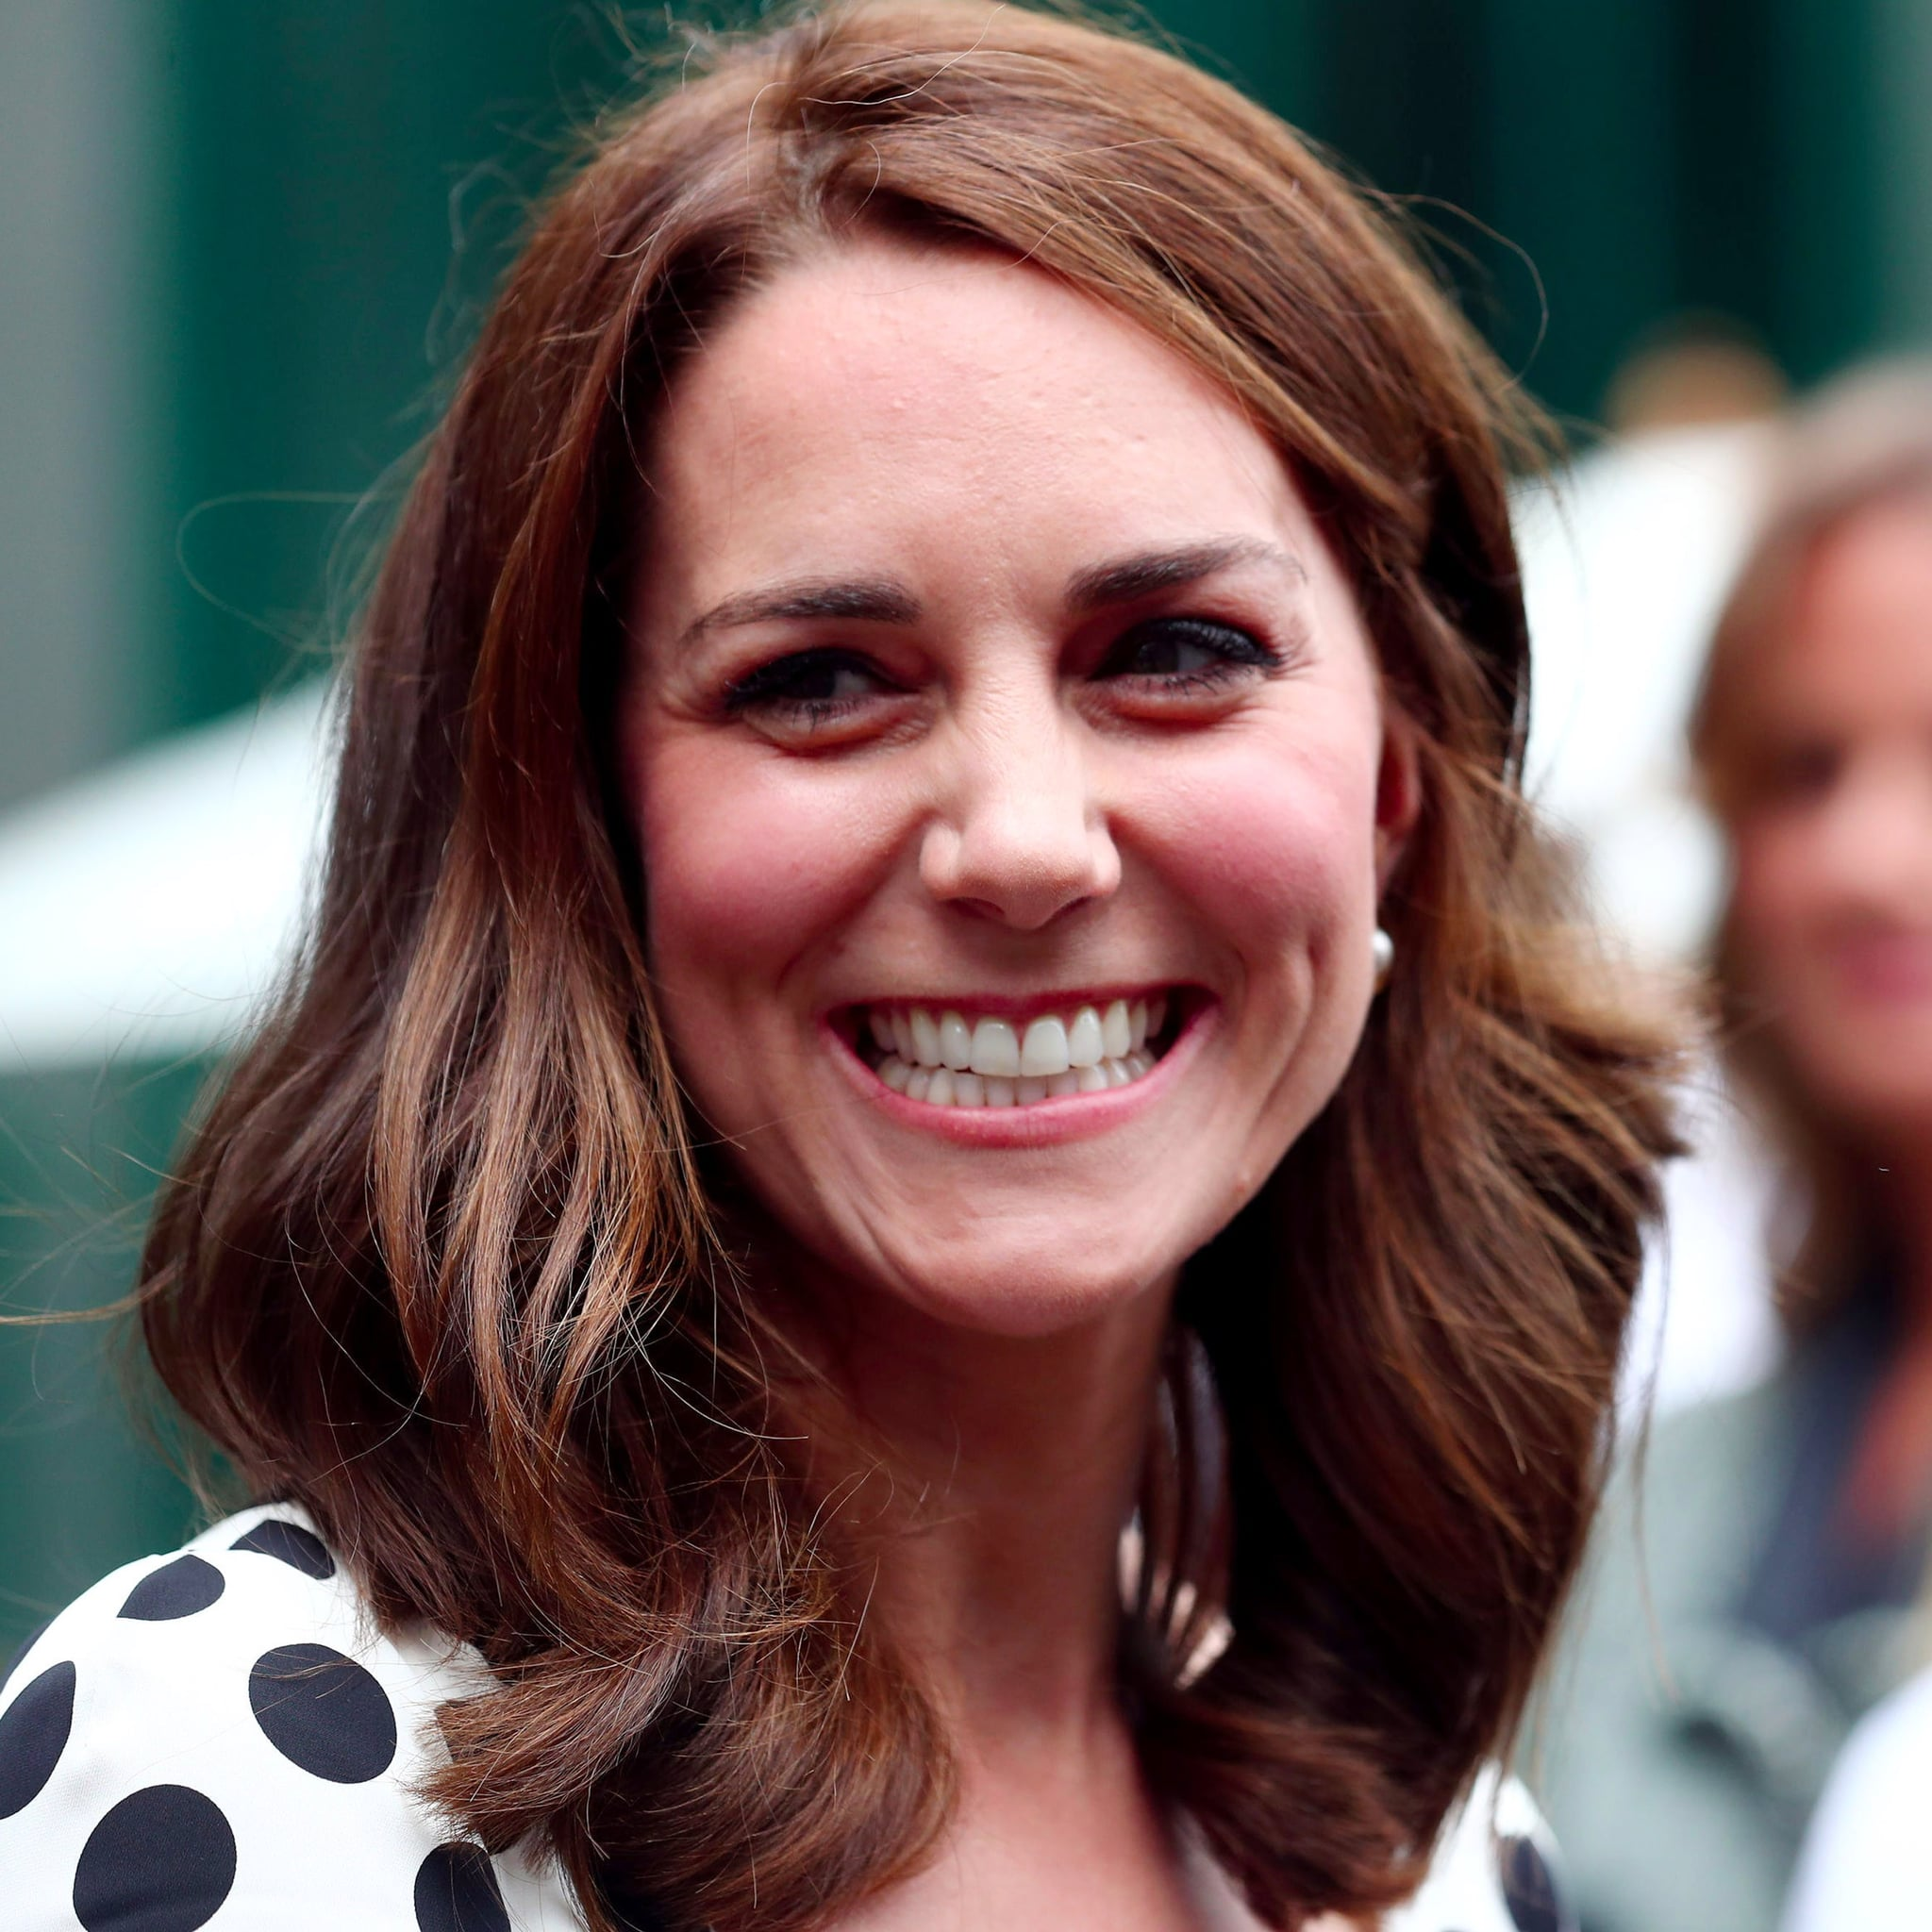 Kate Middleton Just Debuted An Even Shorter Hairstyle pics